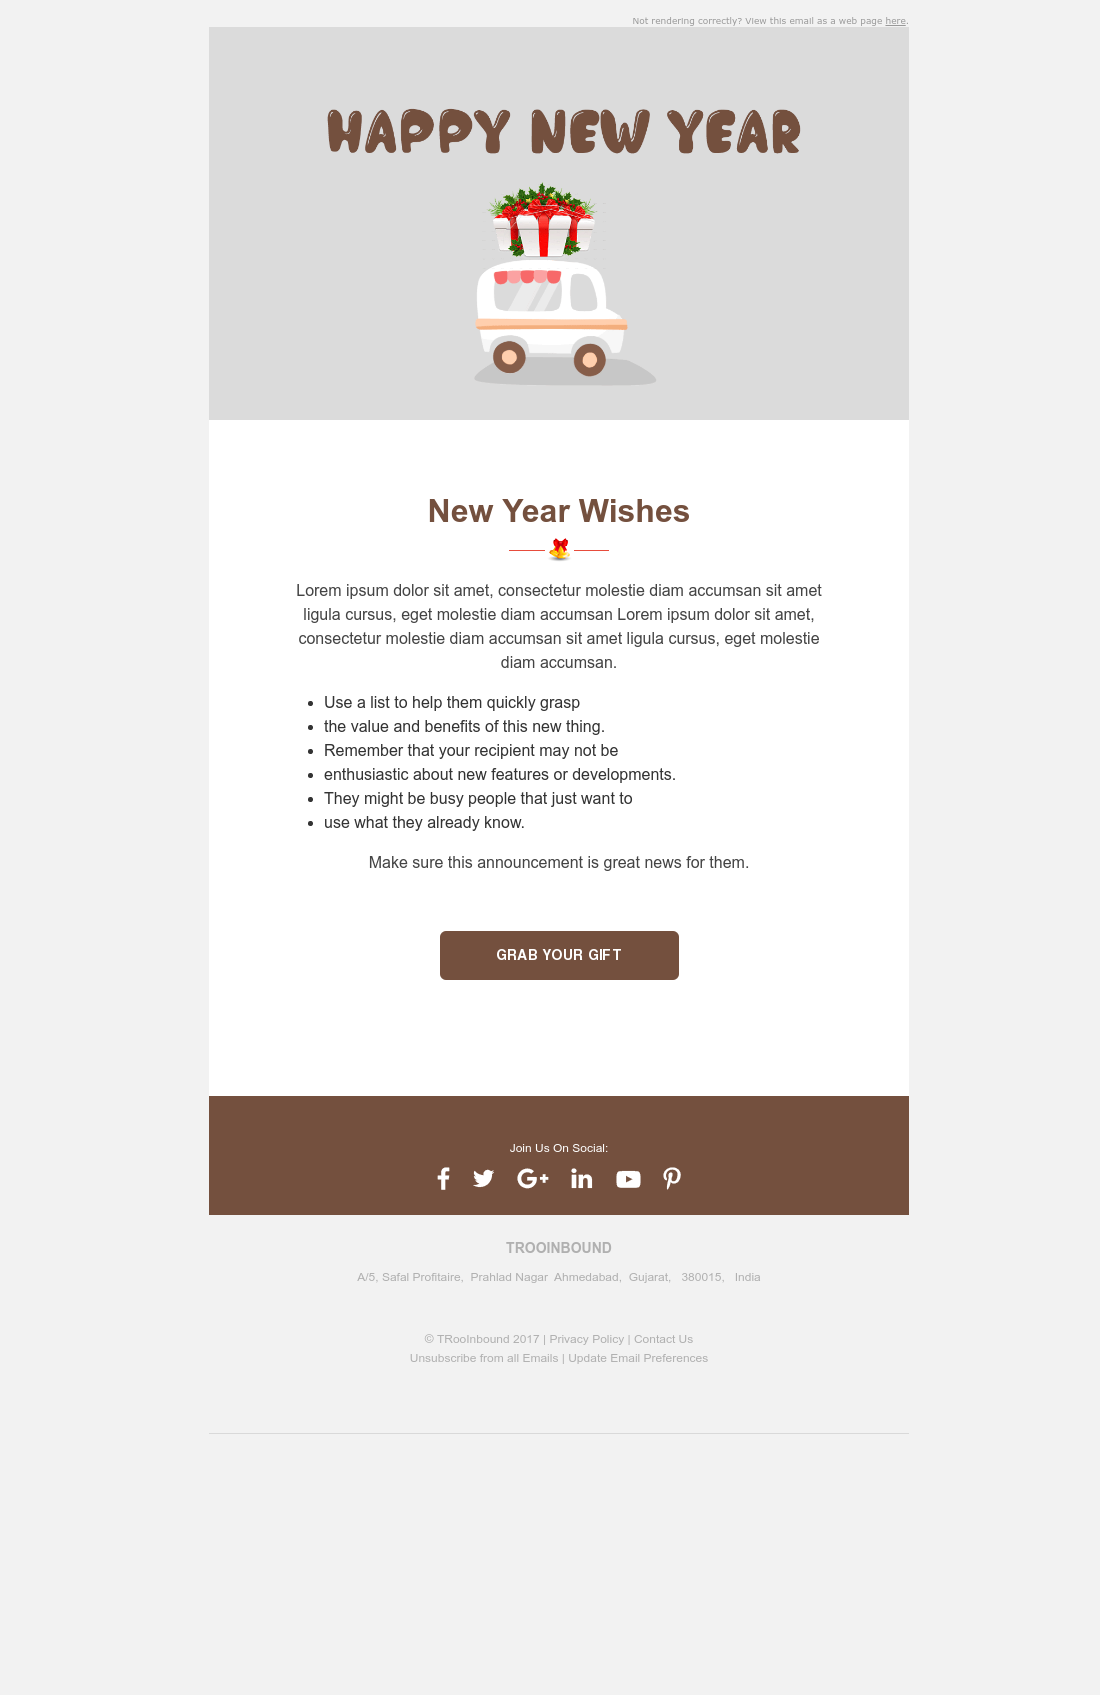 Animated GIF Email - Wishing Happy New Year | HubSpot